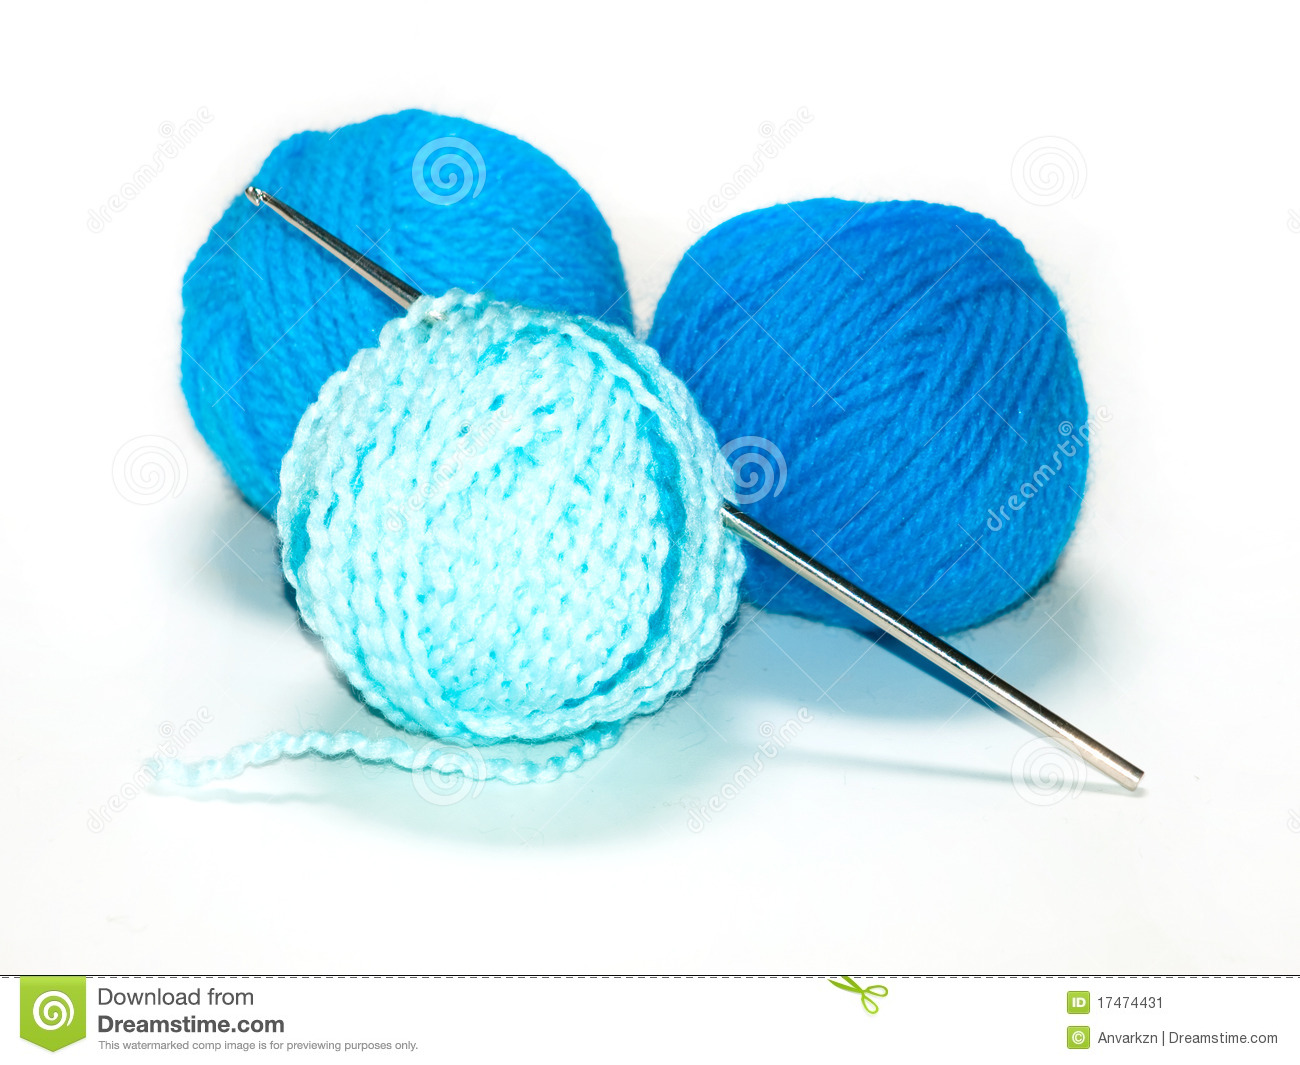 Crocheting Needles And Yarn : Download image Yarn And Crochet Hooks PC, Android, iPhone and iPad ...